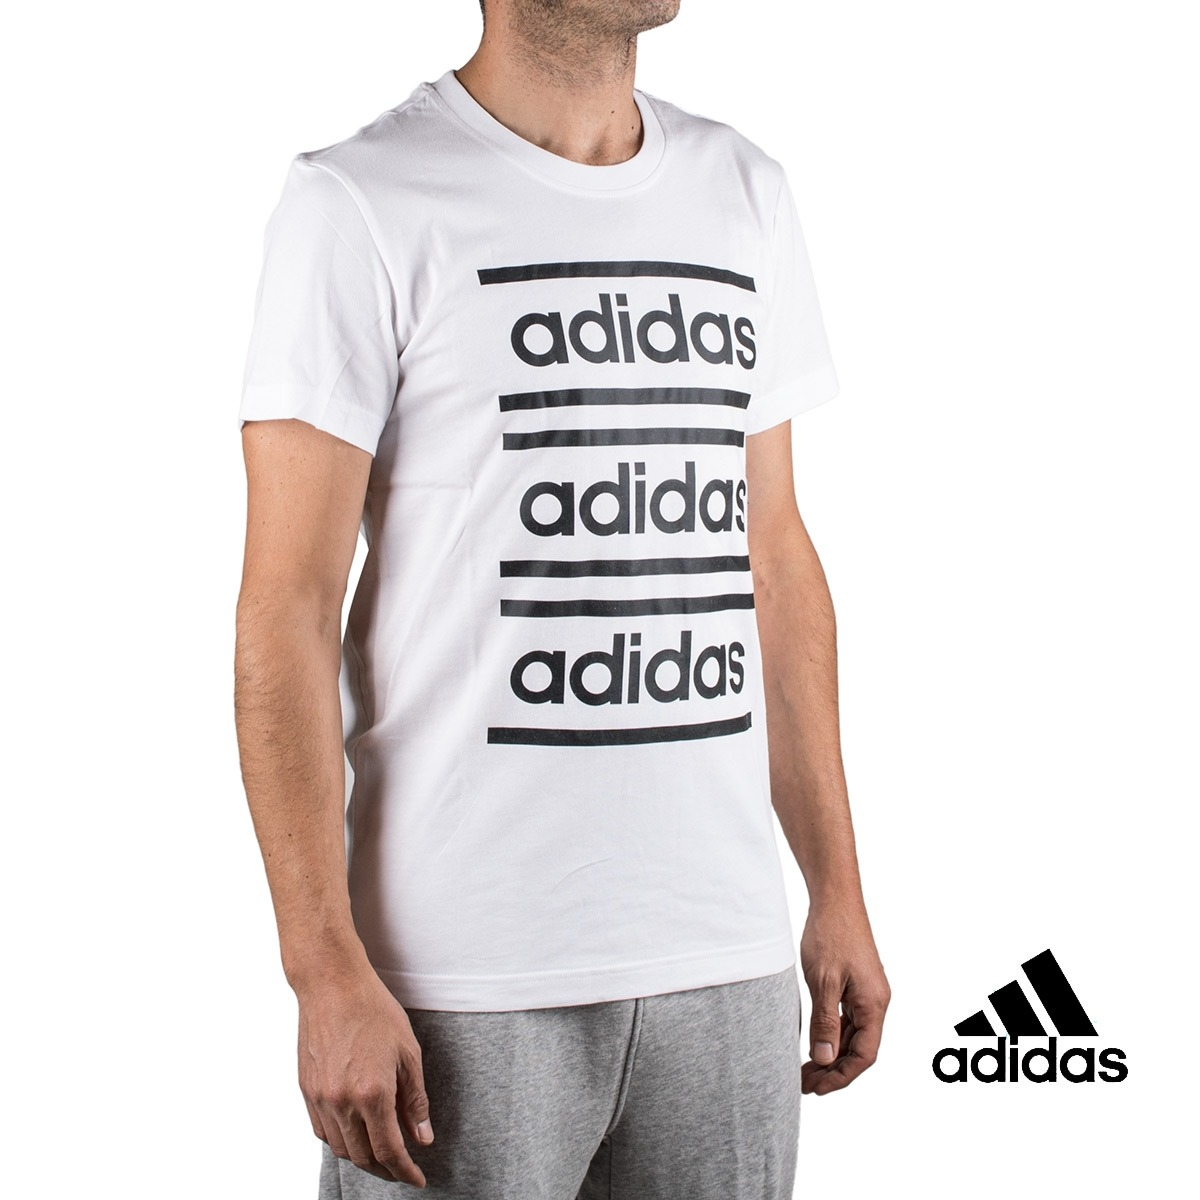 Adidas Camiseta Celebrate The 90s Blanca Hombre